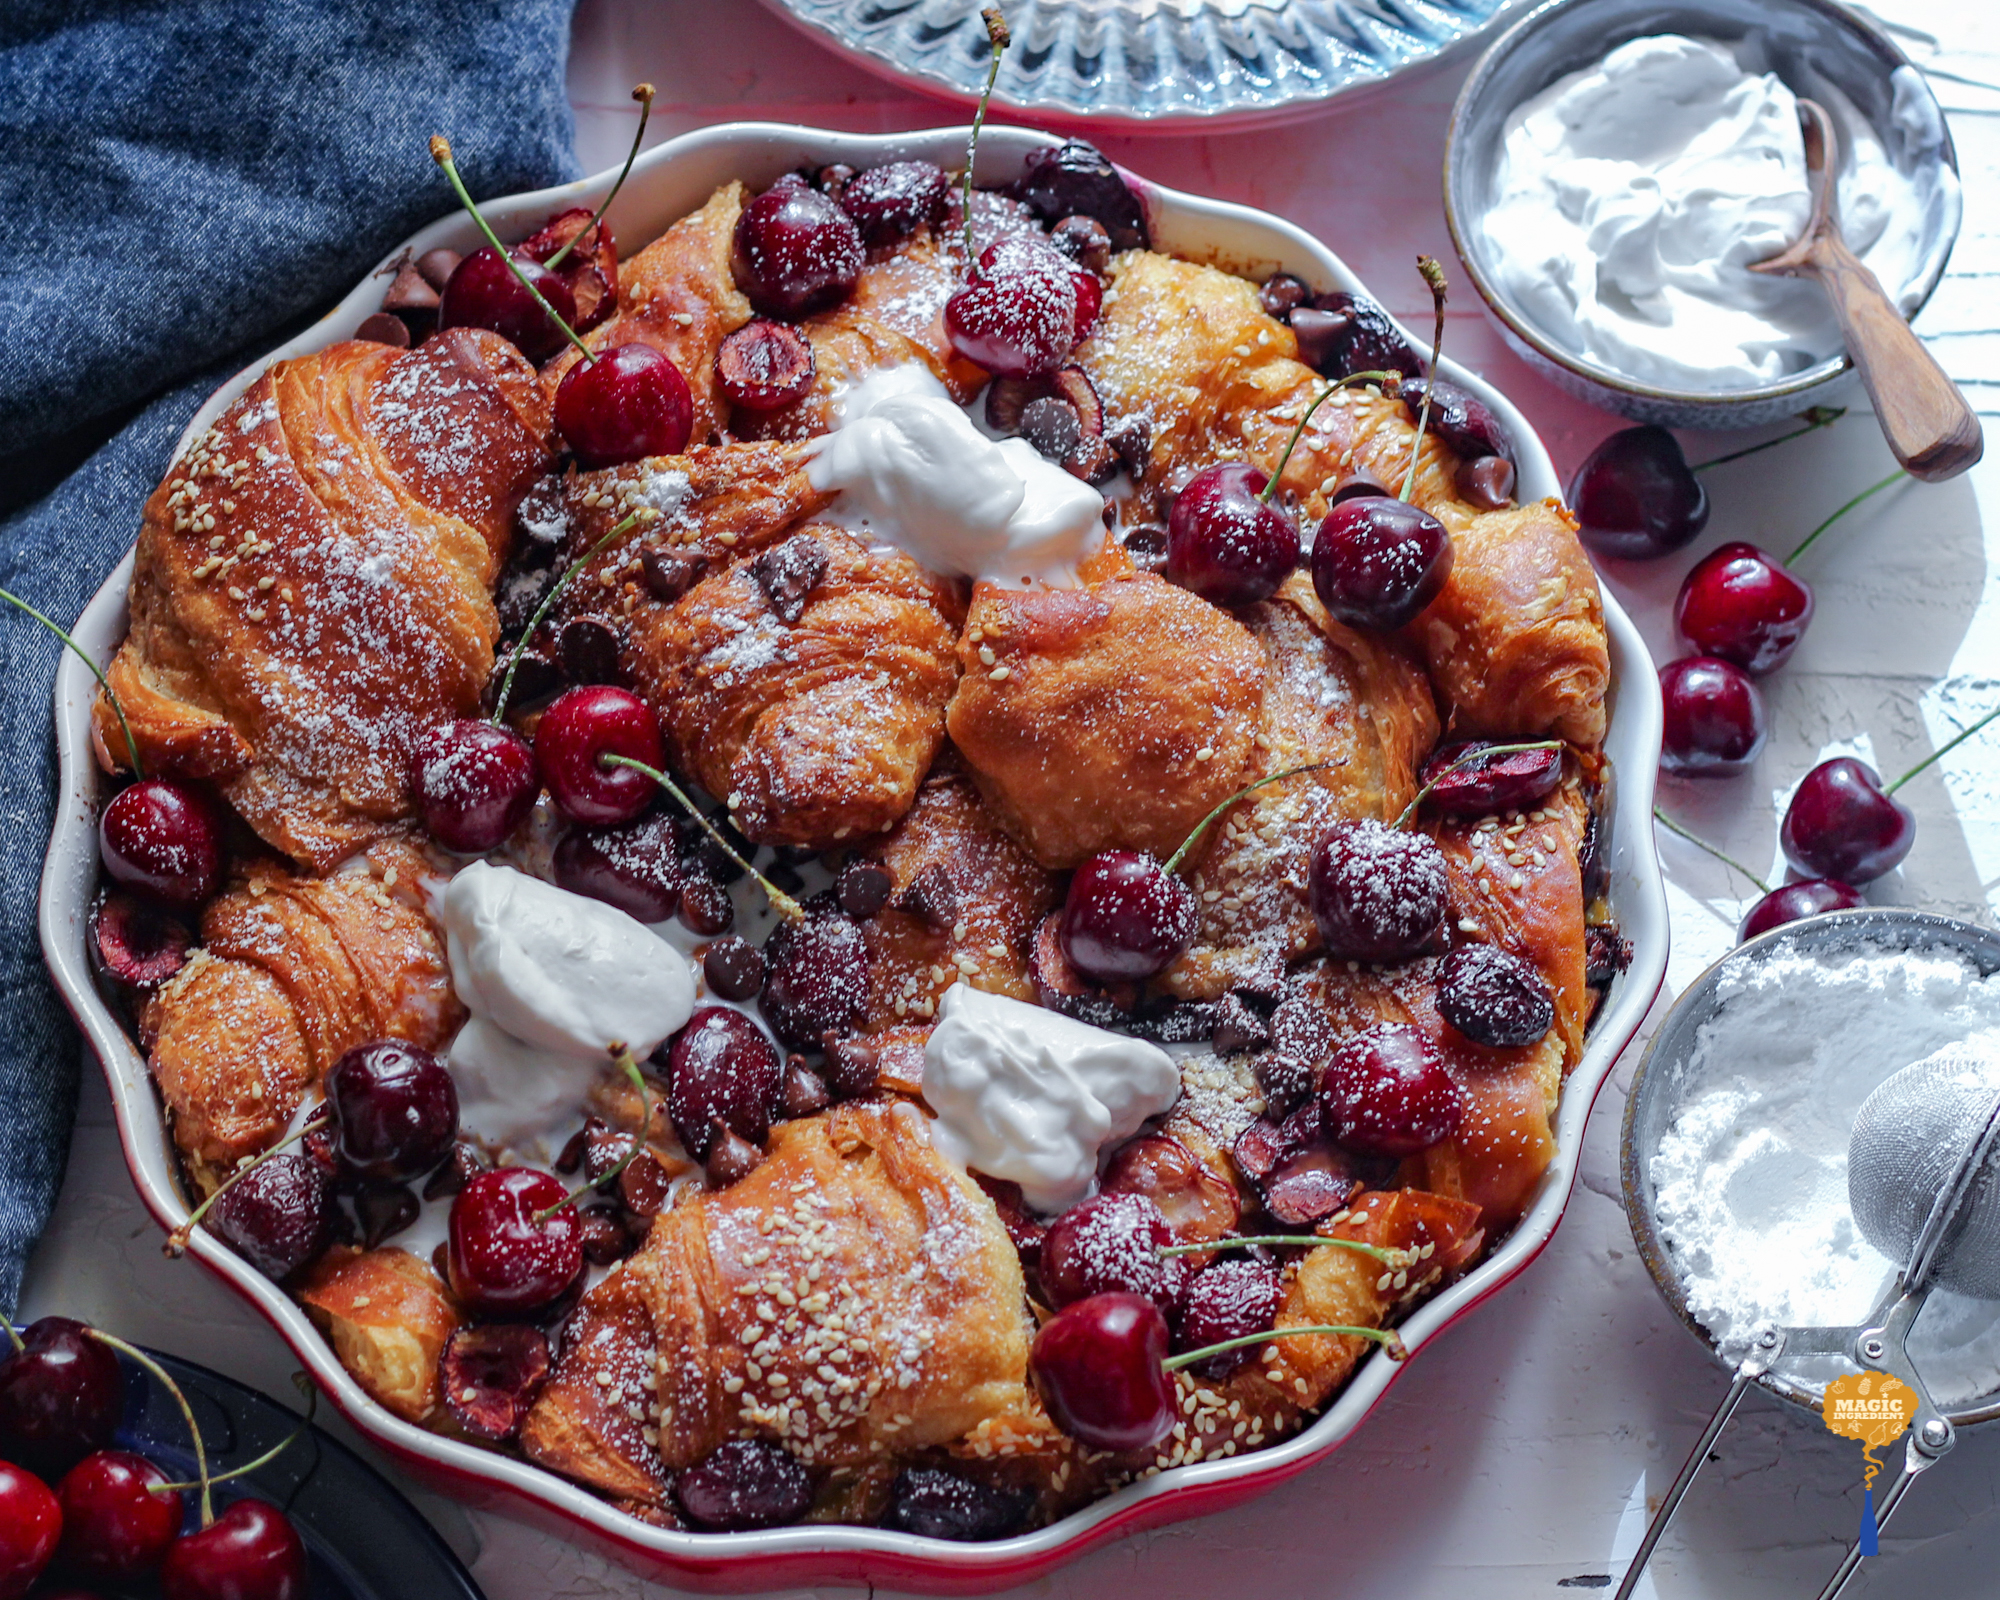 Baked French toast with cherries and chocolate